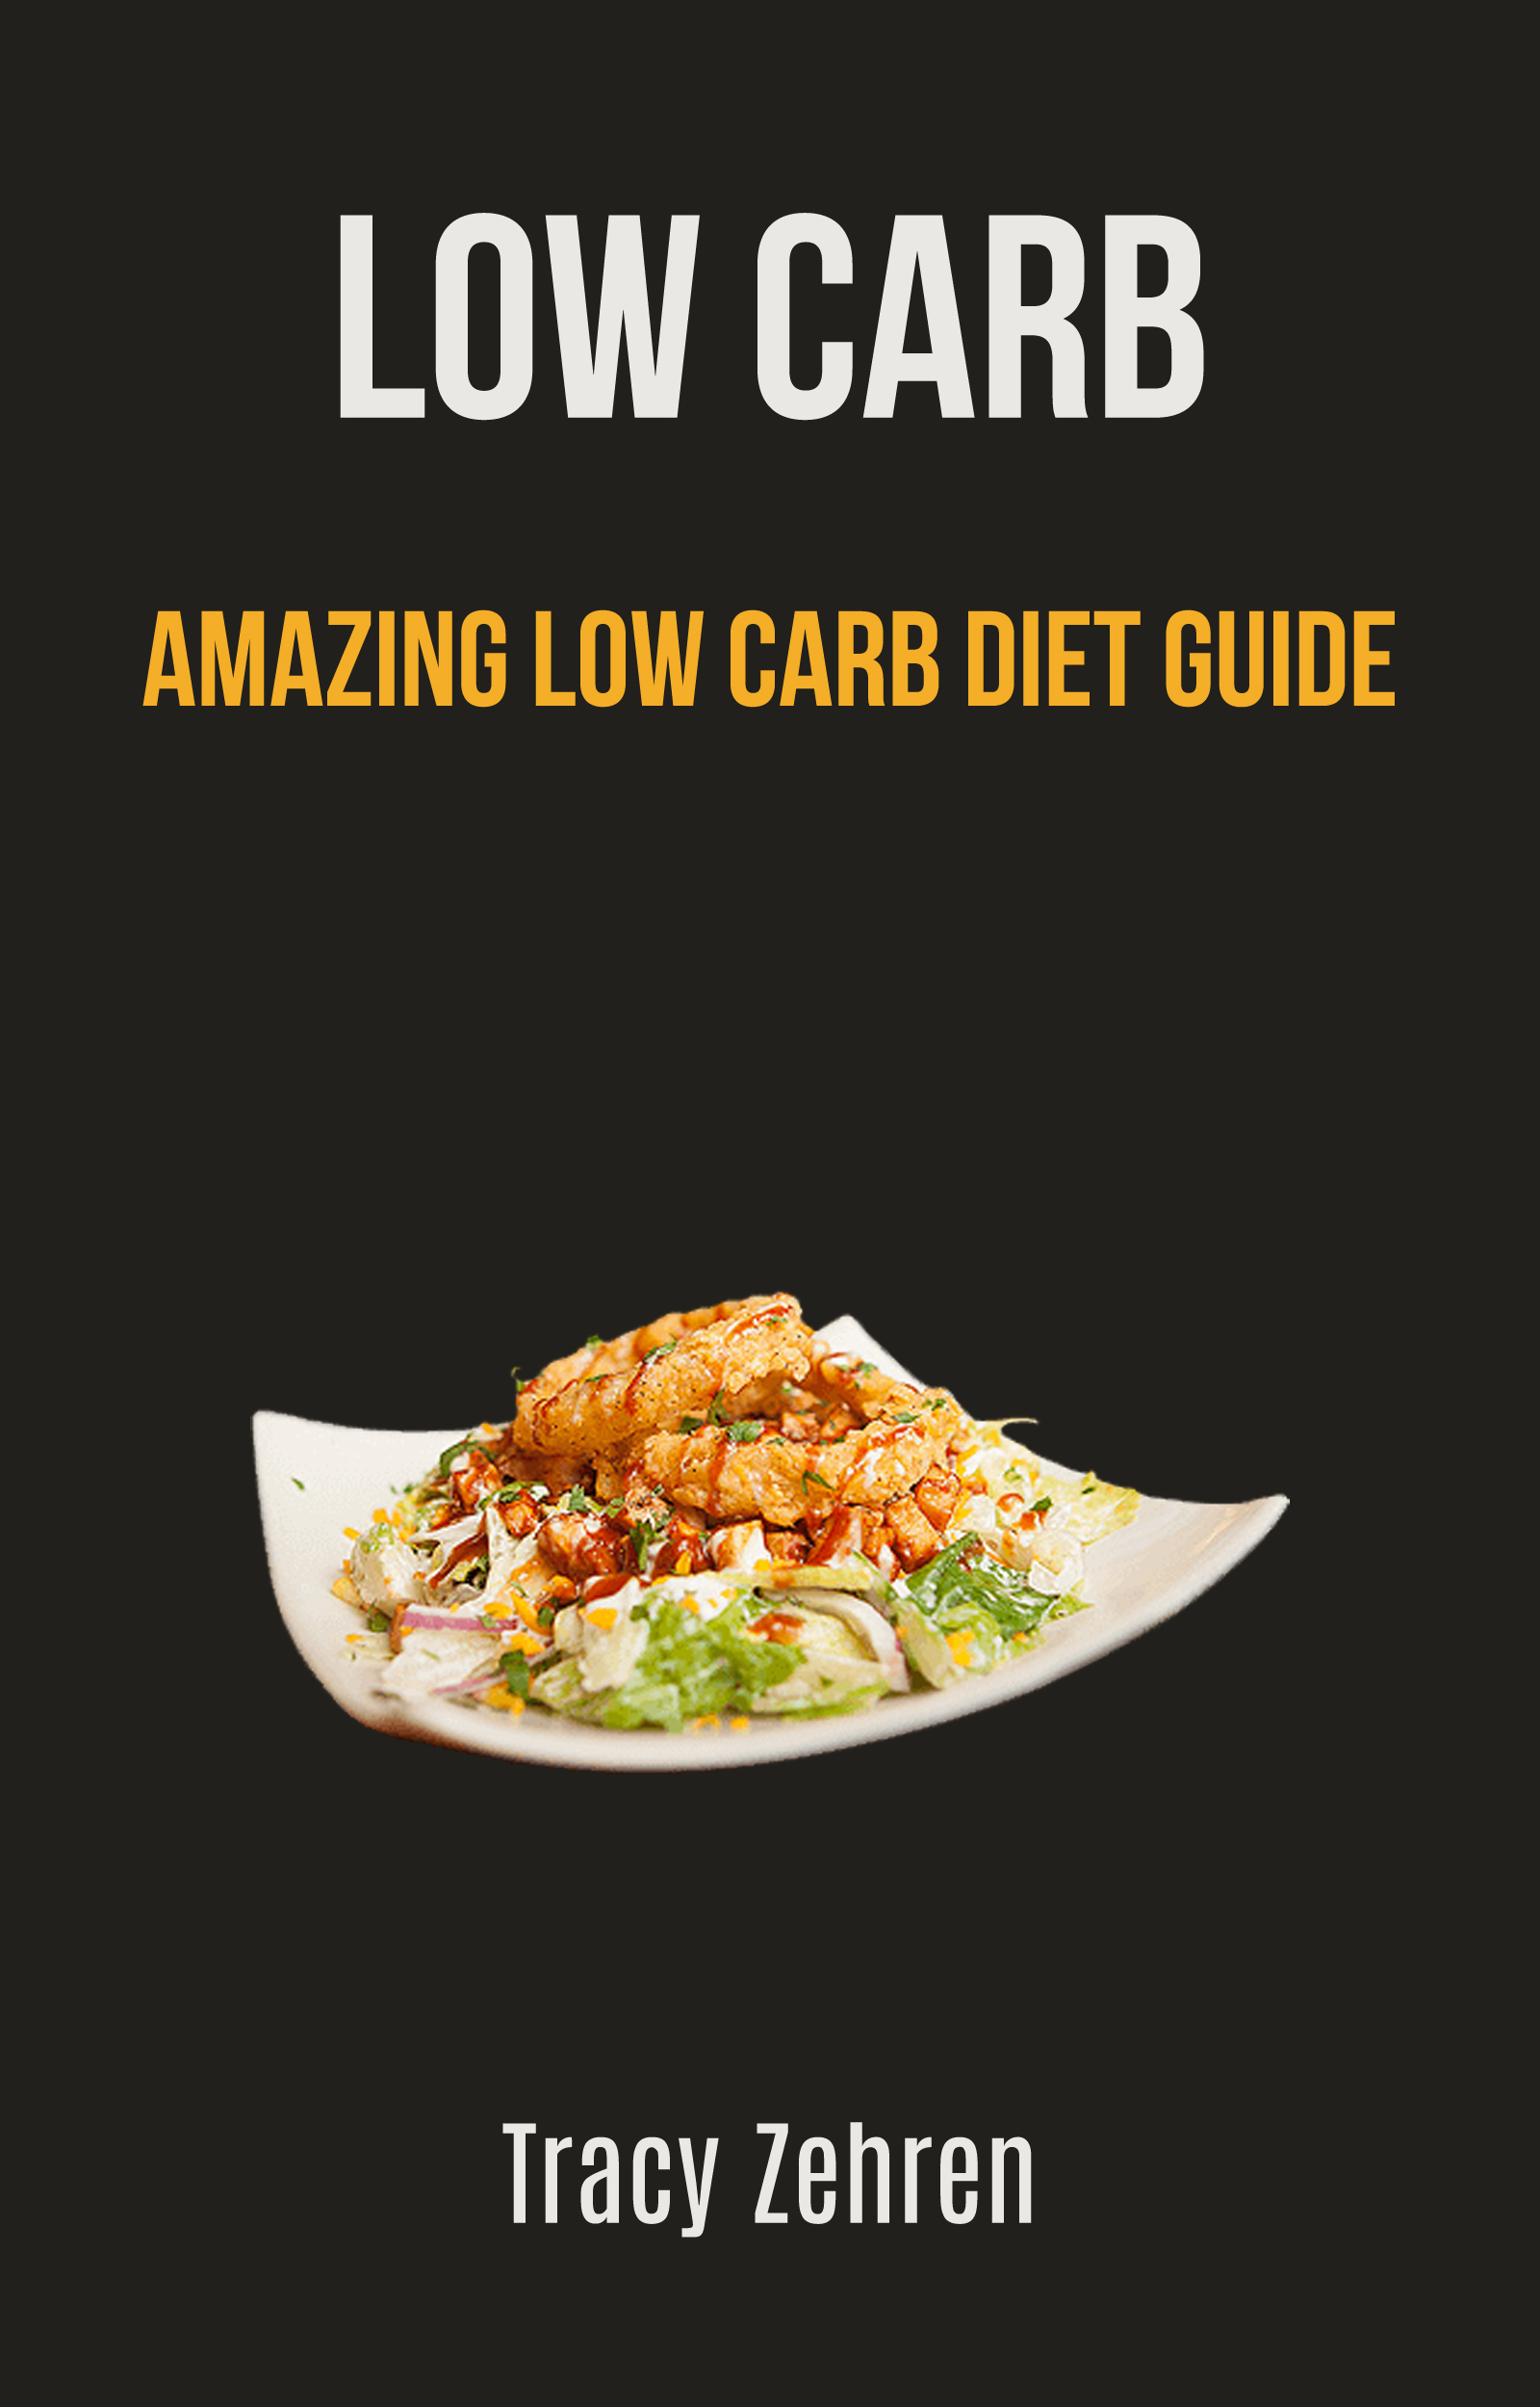 Low carb: amazing low carb diet guide